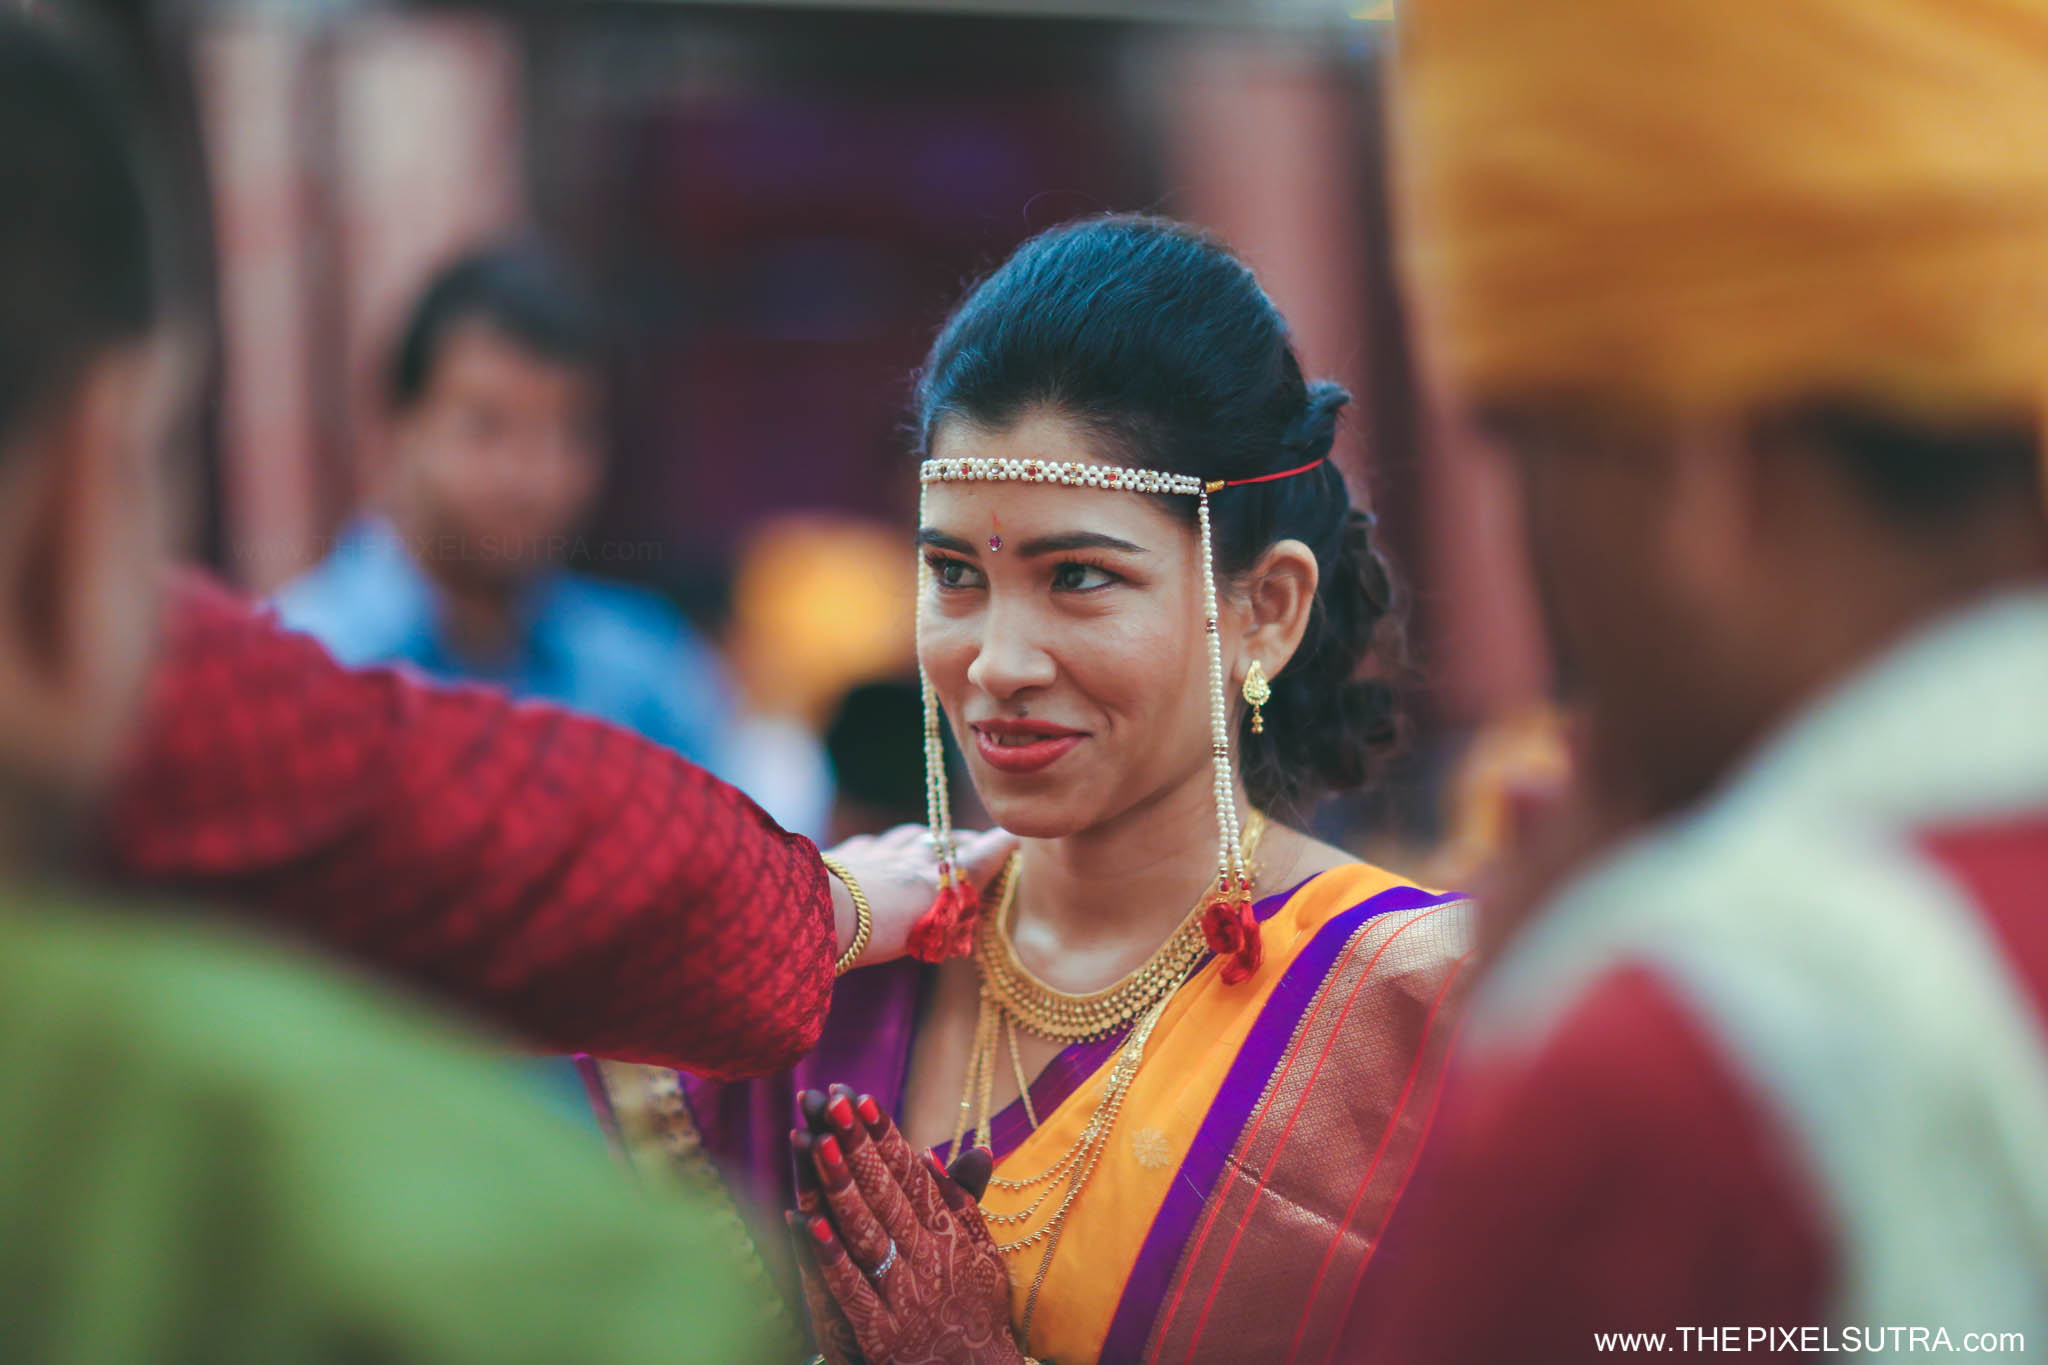 The Pixel Sutra Nachiket x Priyanka Candid Wedding photographer Mumbai Best  (31).jpg